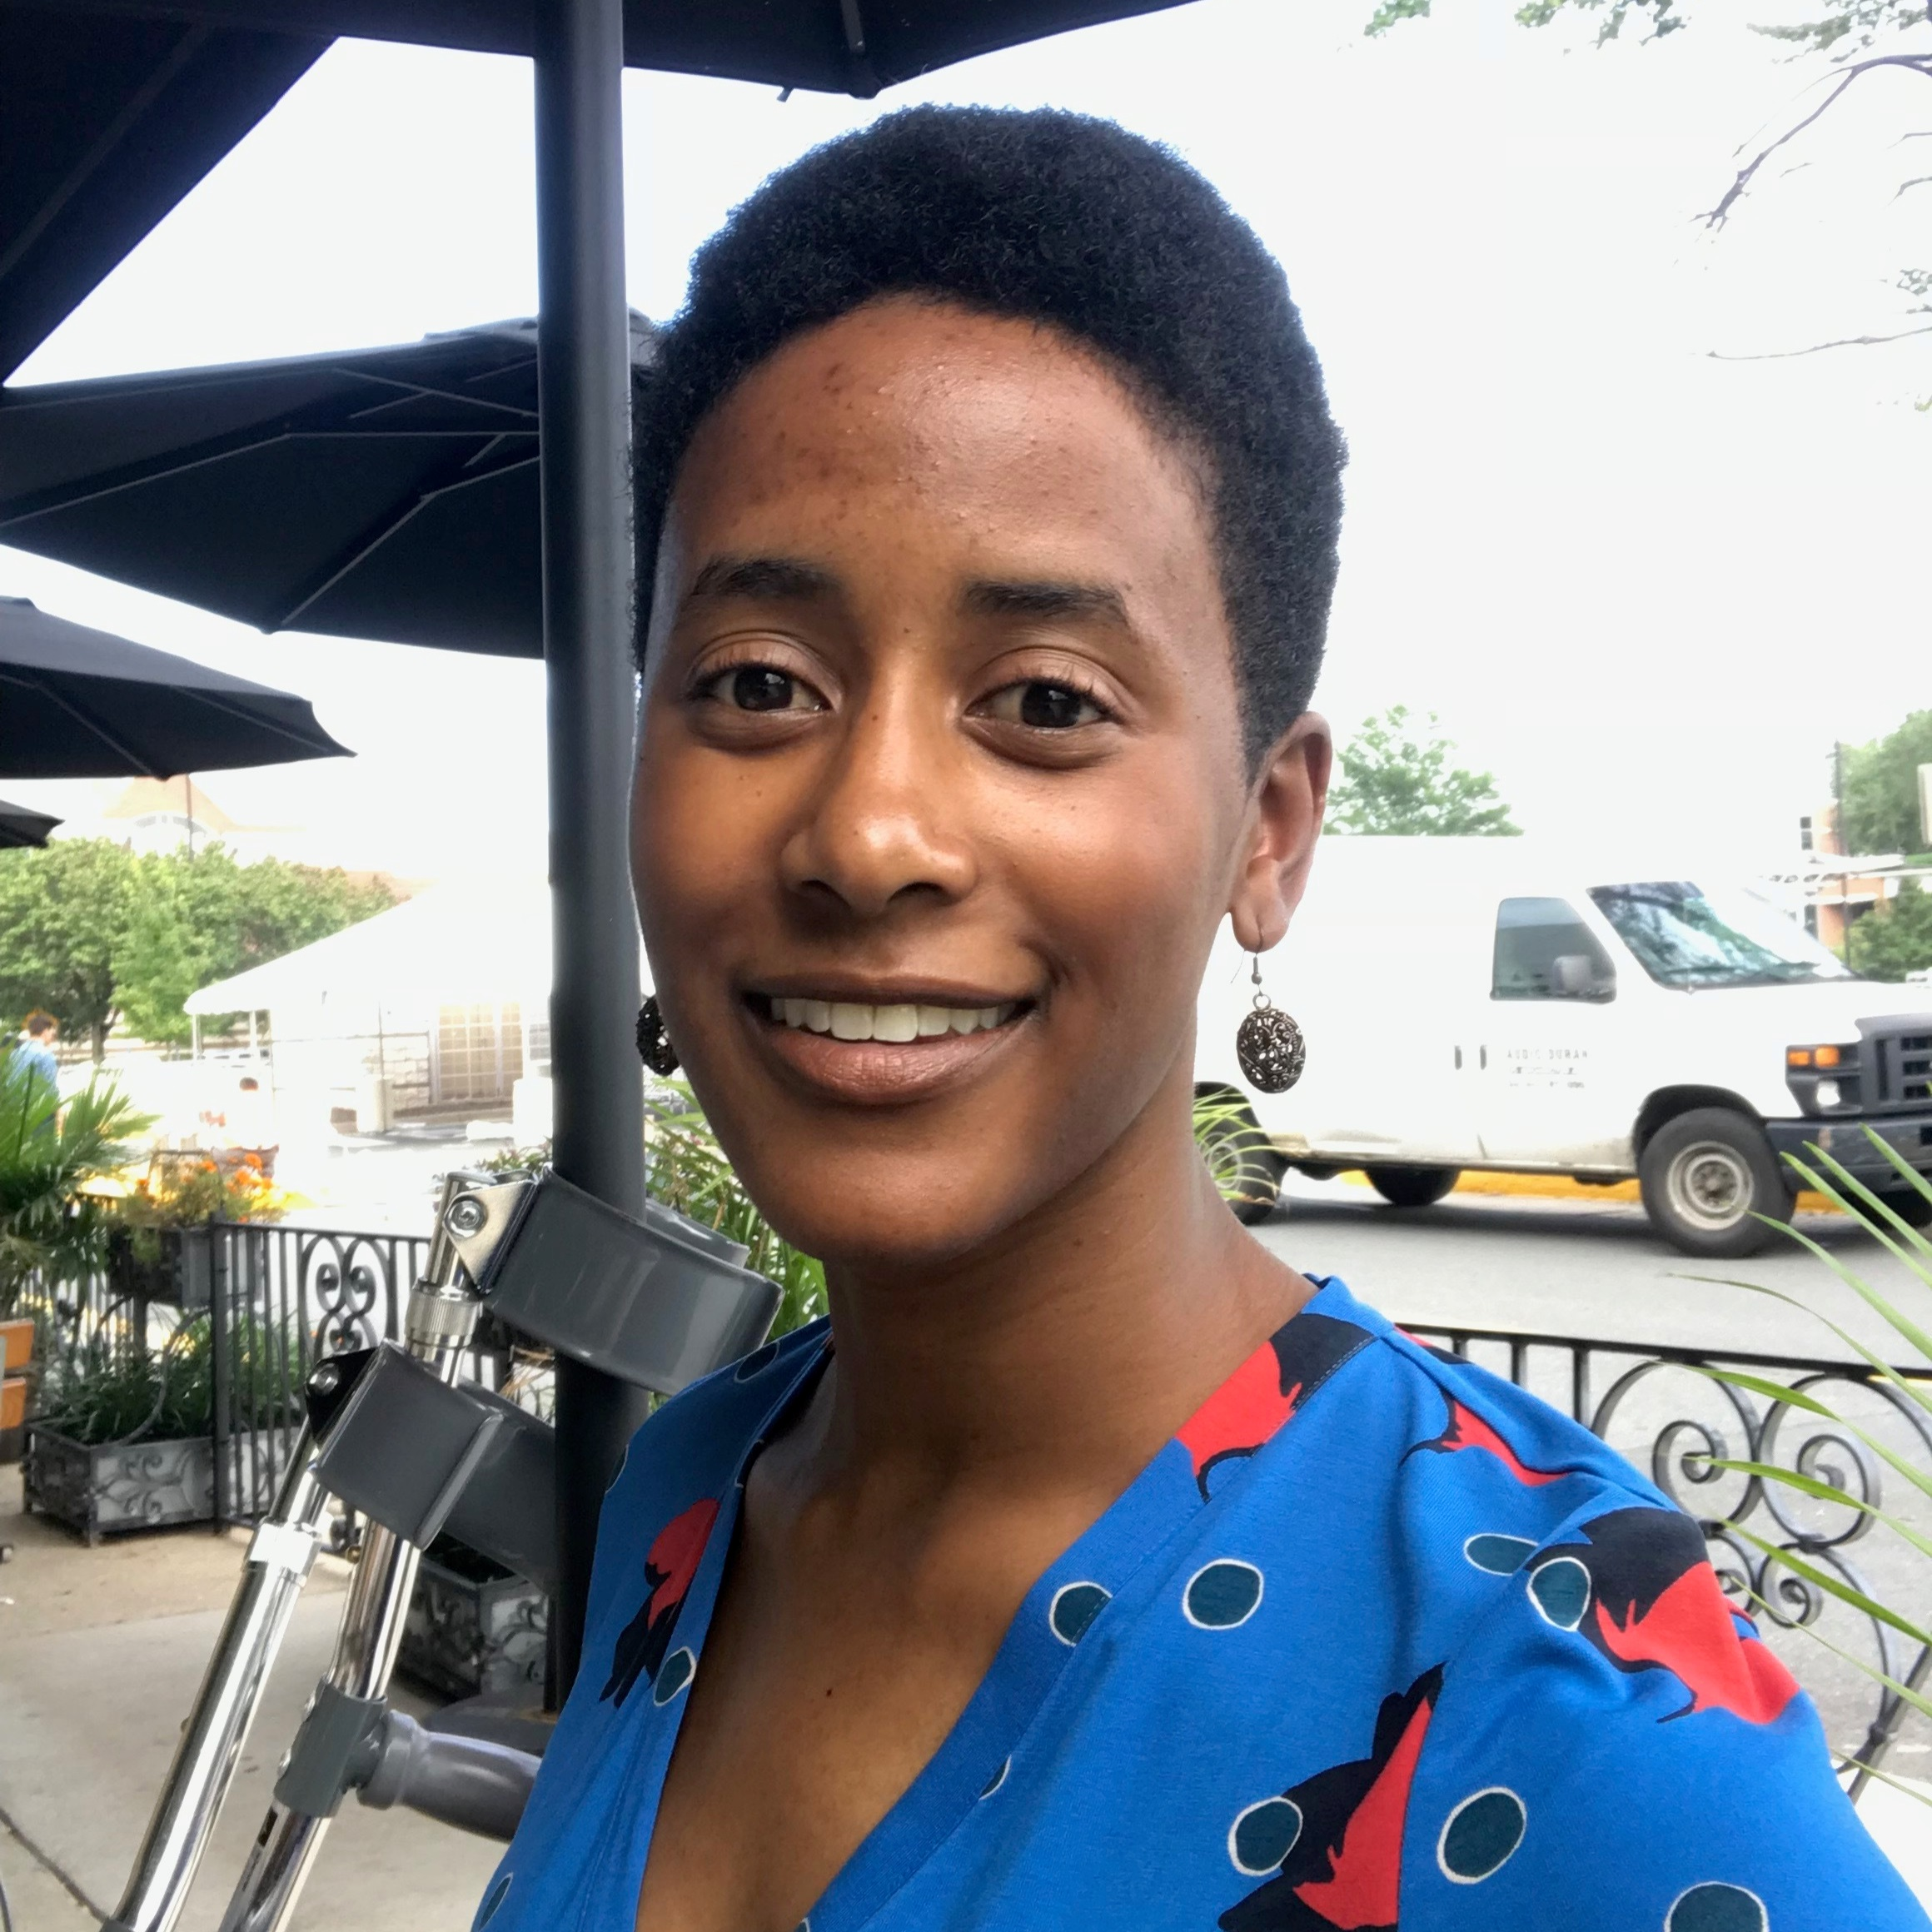 DANIELLE WILLIAMS    Danielle is the founder of Melanin Base Camp and co-founder of Team Blackstar Skydivers. The Army pushed her out of her first airplane in 2006 and she's been in love with adventure sports ever since.    Read more  →